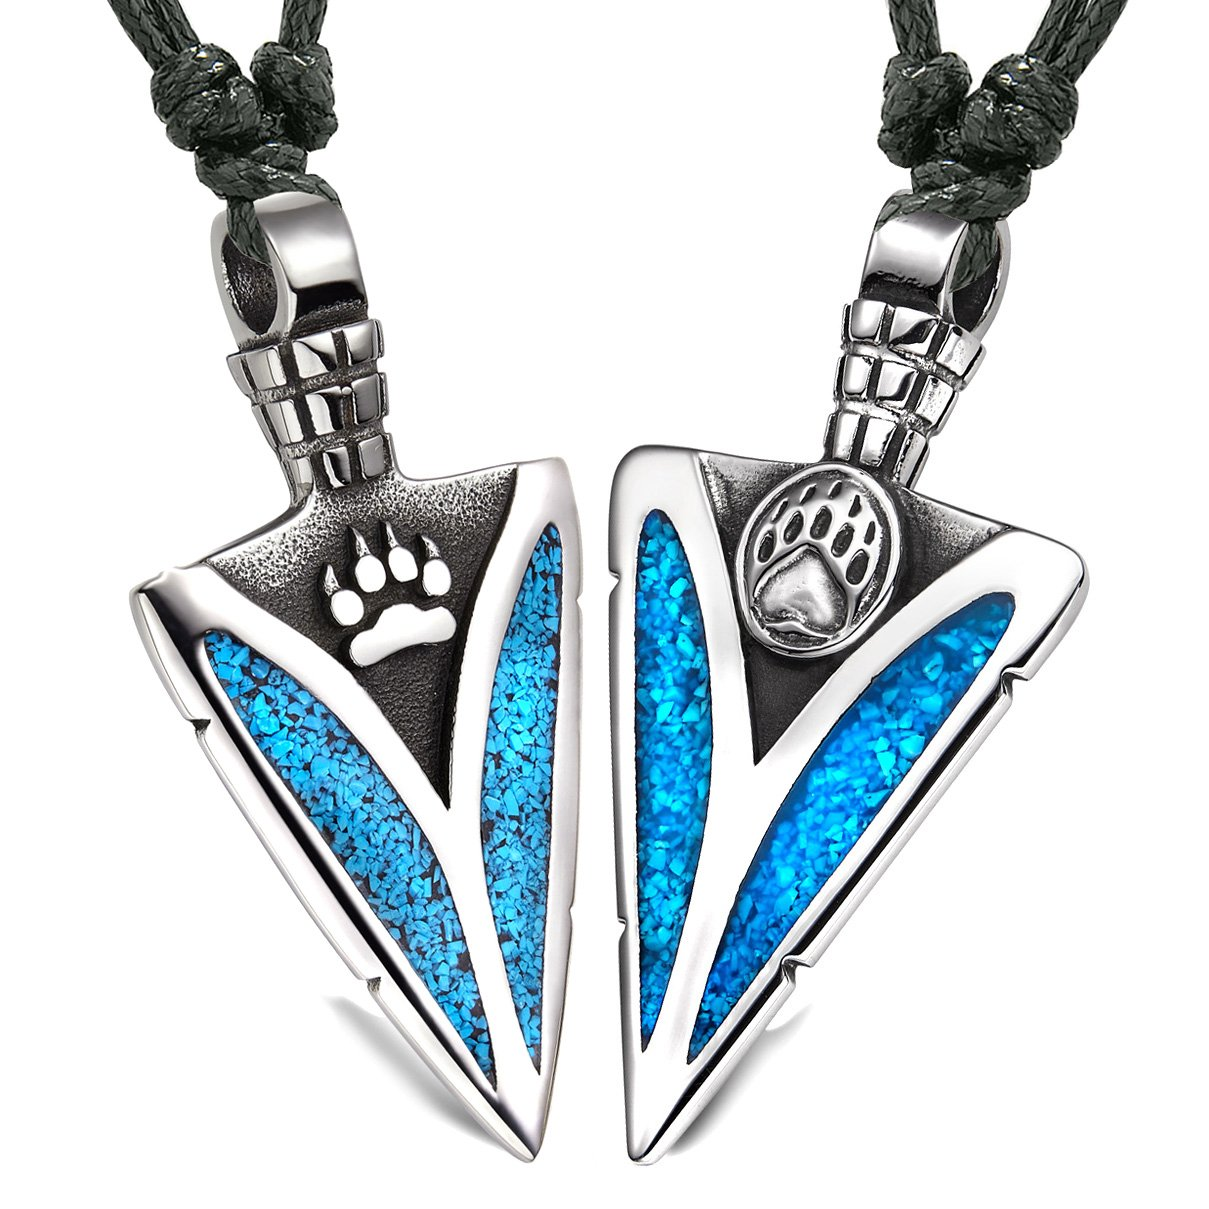 Arrowhead Wolf and Bear Paws Love Couples or BFF Set Amulets Simulated Turquoise Adjustable Necklaces